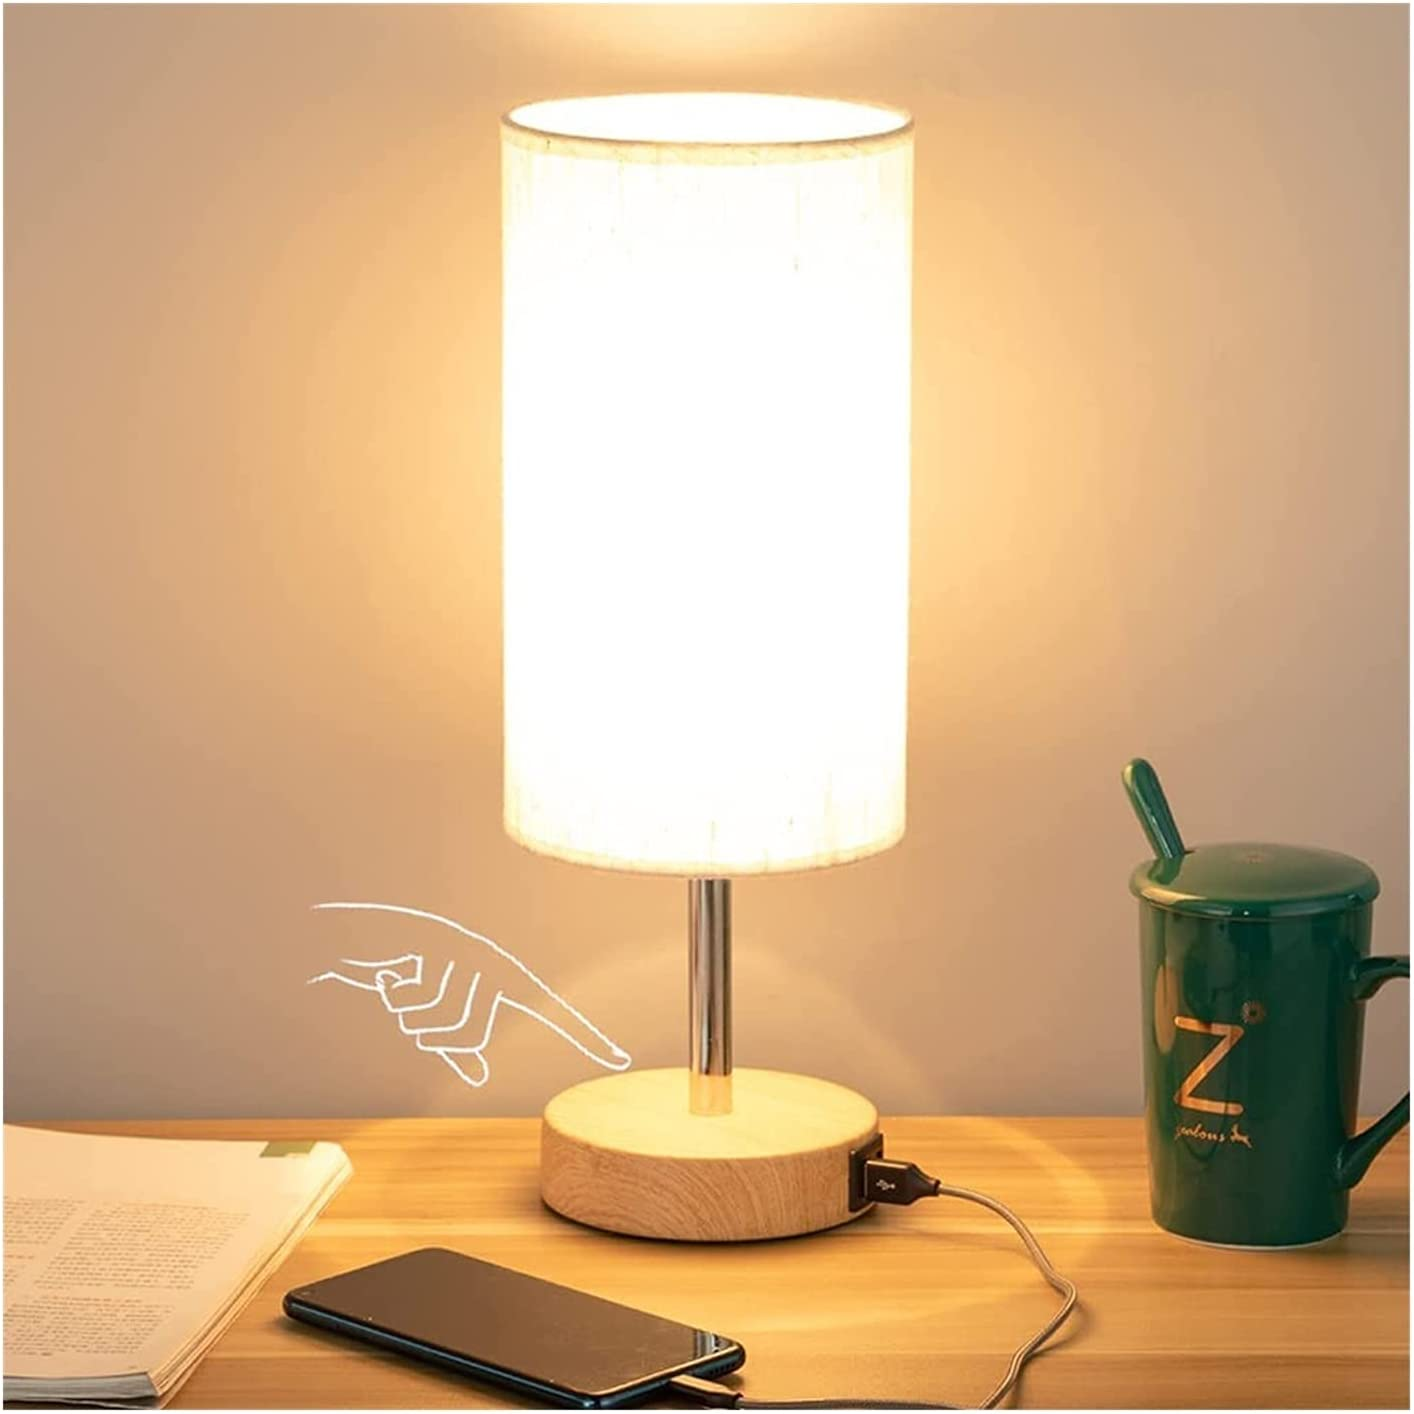 Dakecy Bedside Table Lamp Dimmable Touch with Import Fast Arlington Mall Ch Control 2